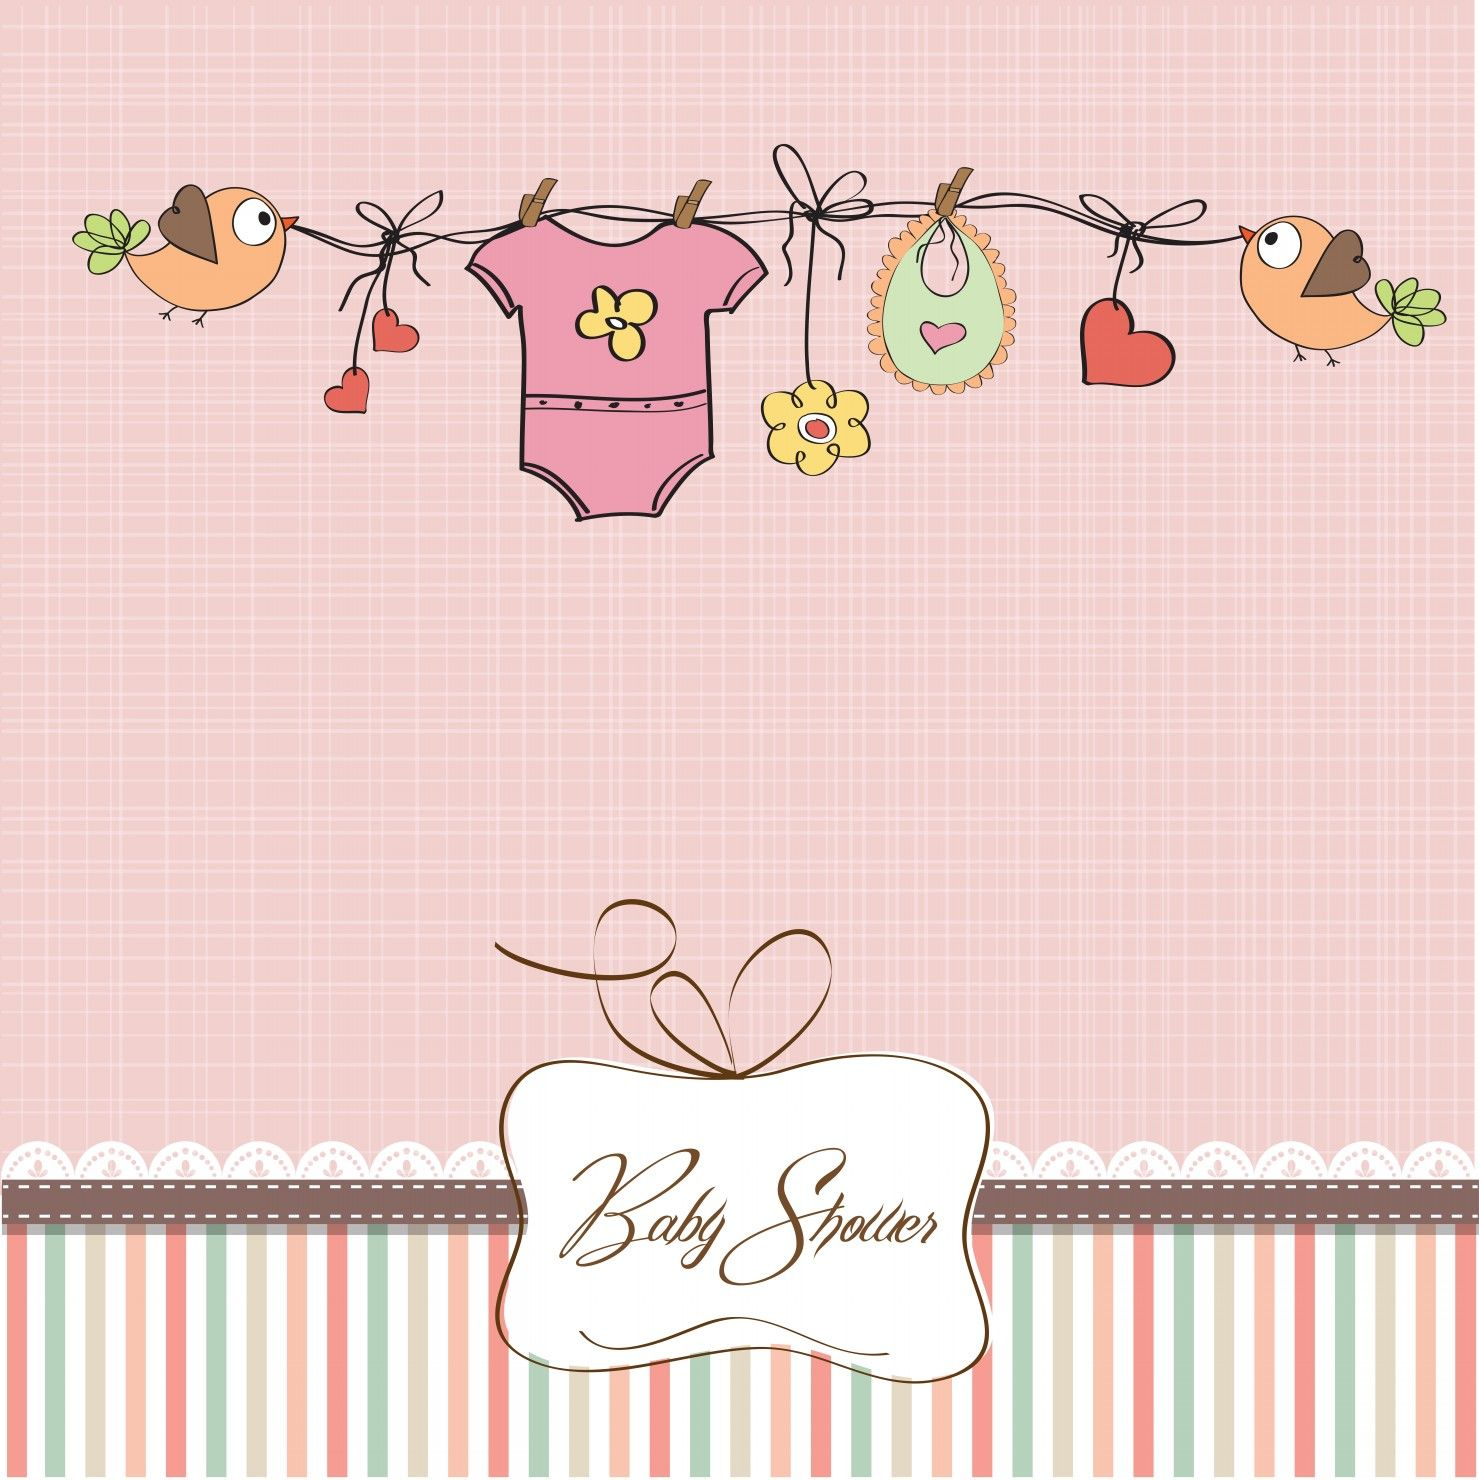 Baby girl shower card Cuty pie Pinterest